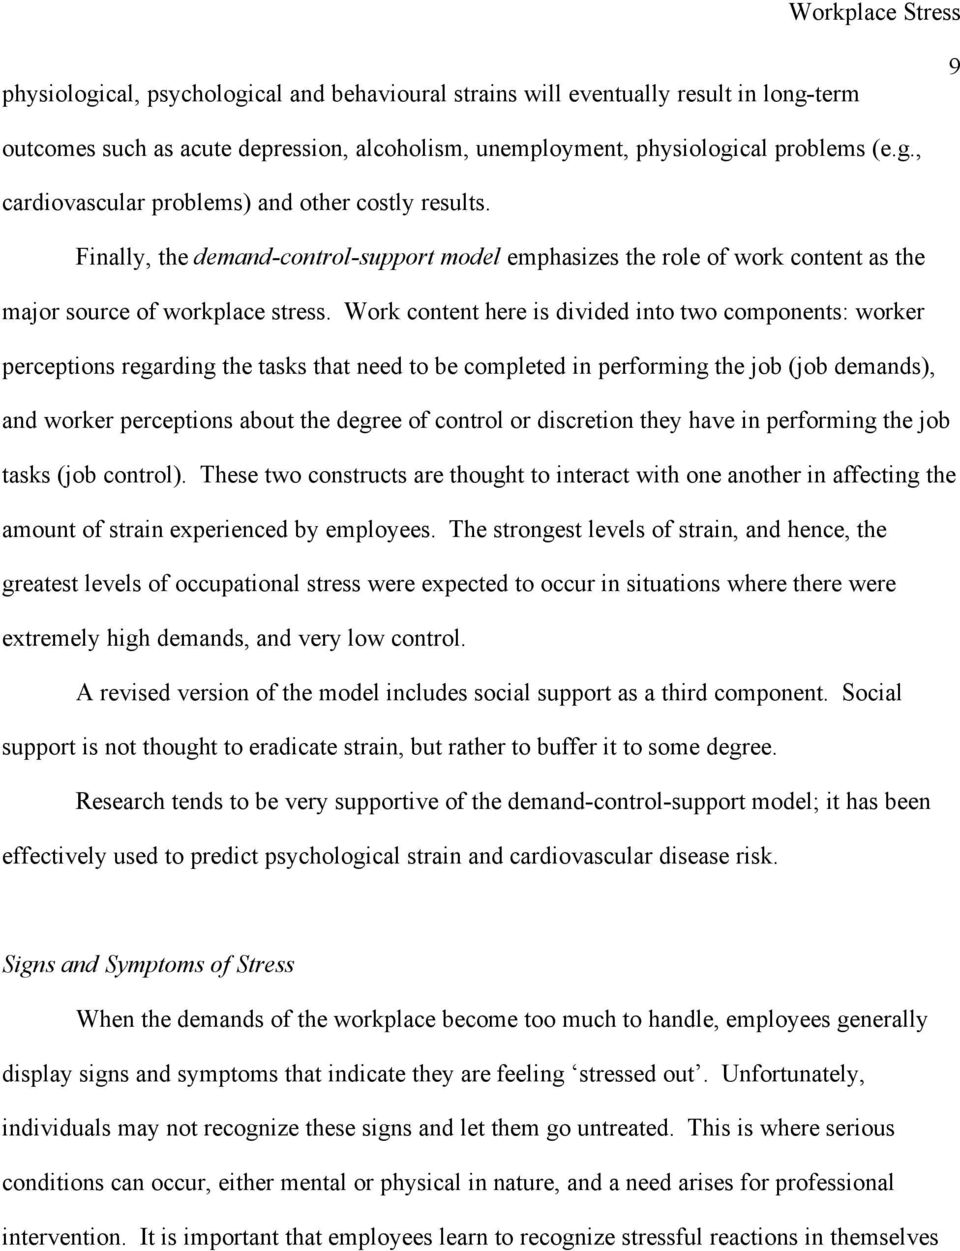 Work content here is divided into two components: worker perceptions regarding the tasks that need to be completed in performing the job (job demands), and worker perceptions about the degree of